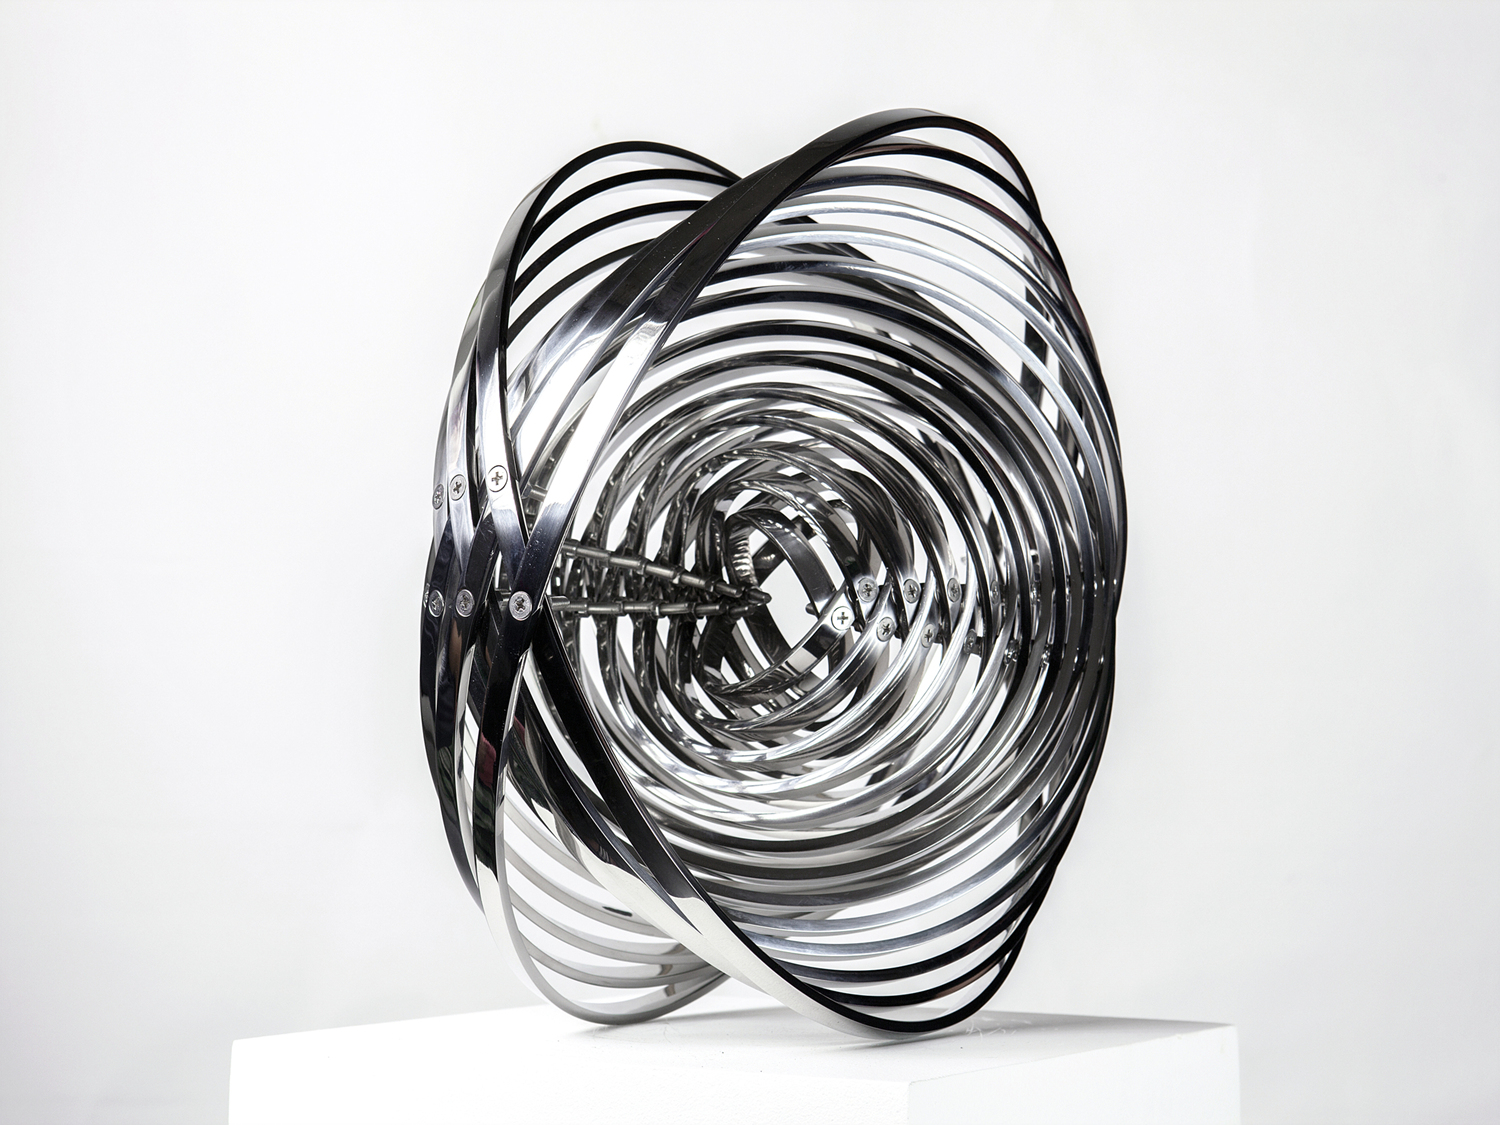 Energy 15   38X40X20cm, Stainless steel, Bolts, Nuts 2014.jpg